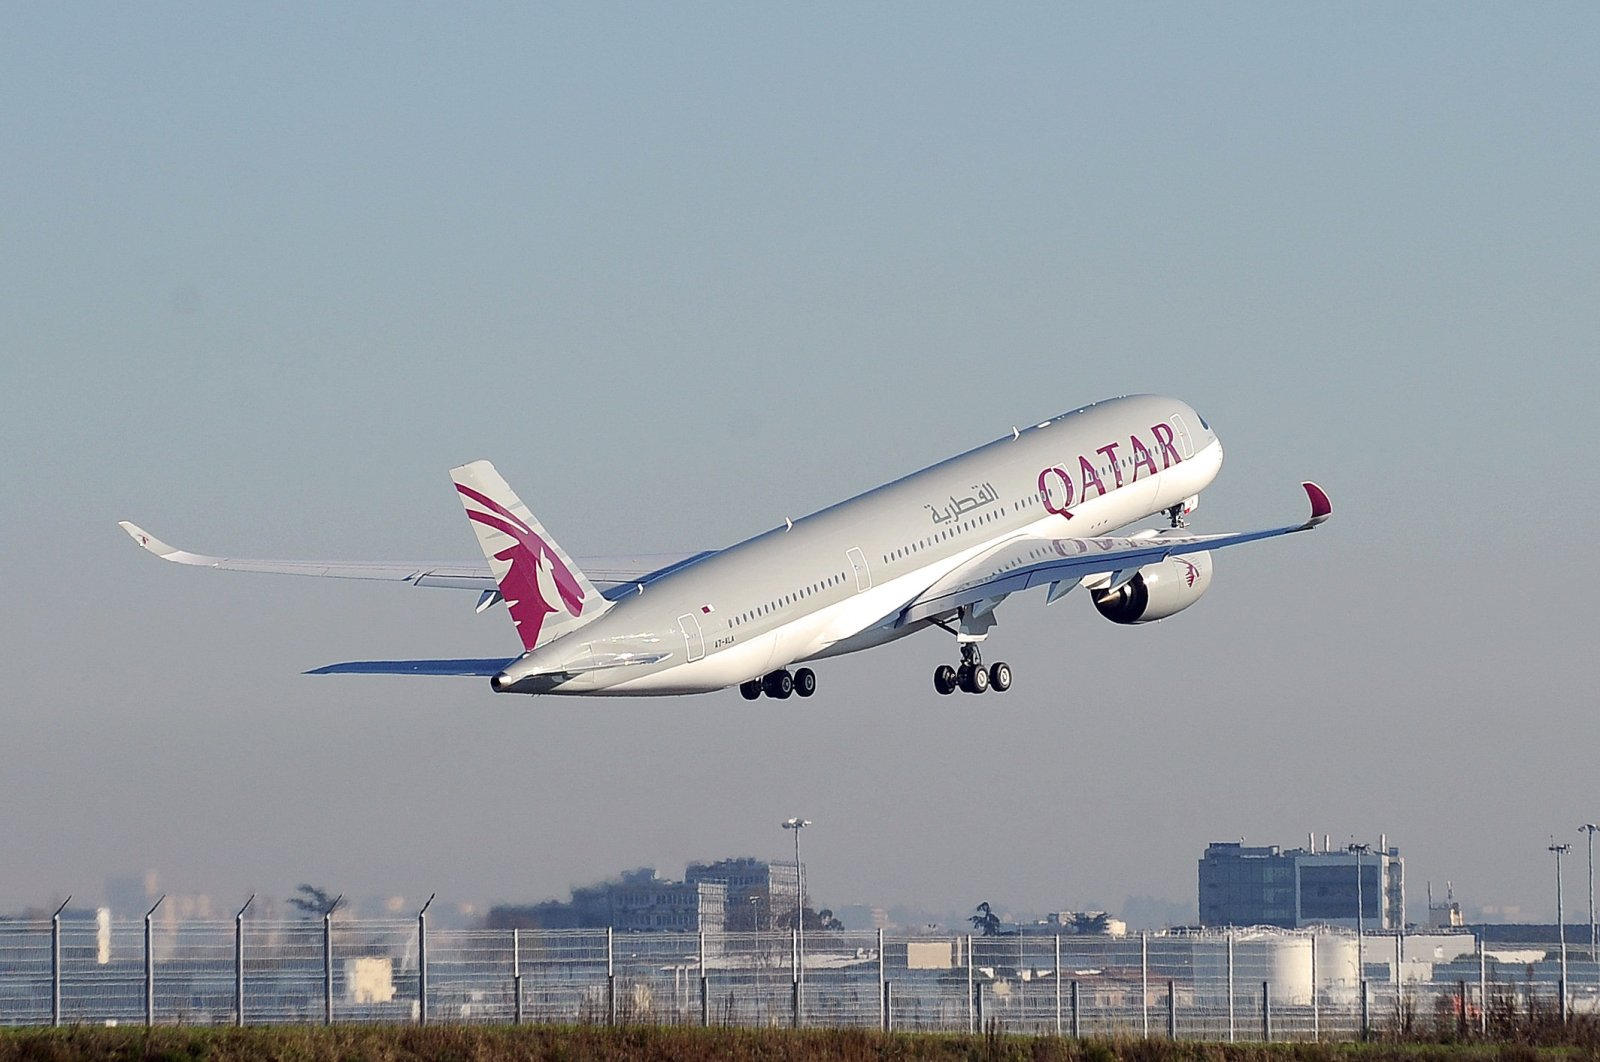 A Qatar Airways plane taking off from the Airbus headquarters in Toulouse, France, Dec. 22, 2014. (AFP Photo)